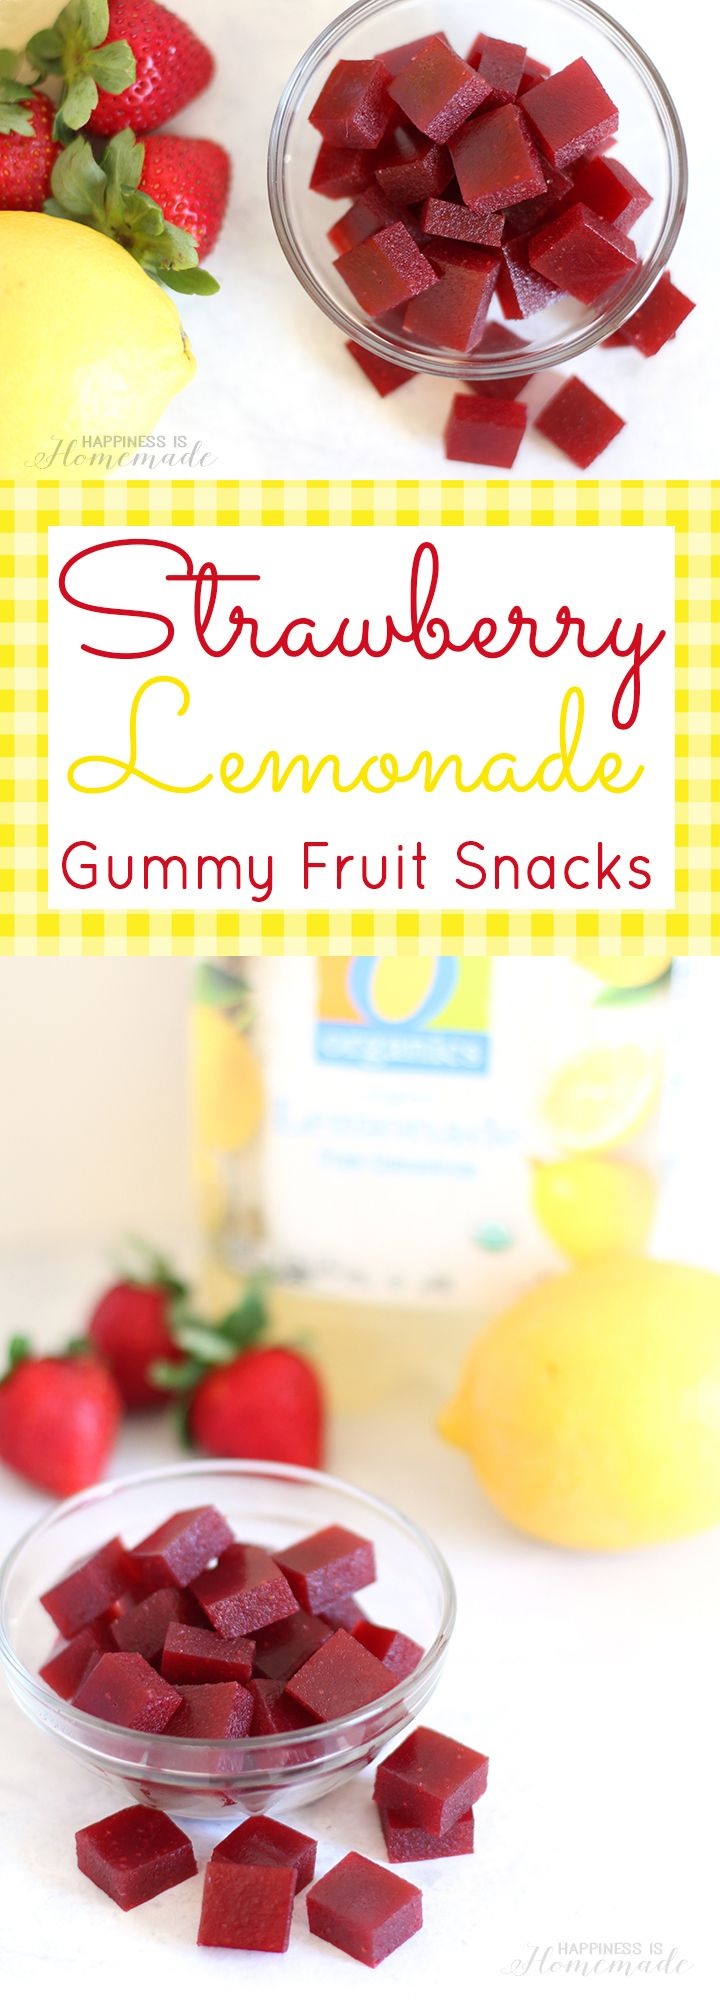 Homemade Organic Strawberry Lemonade Gummy Fruit Snacks Recipe